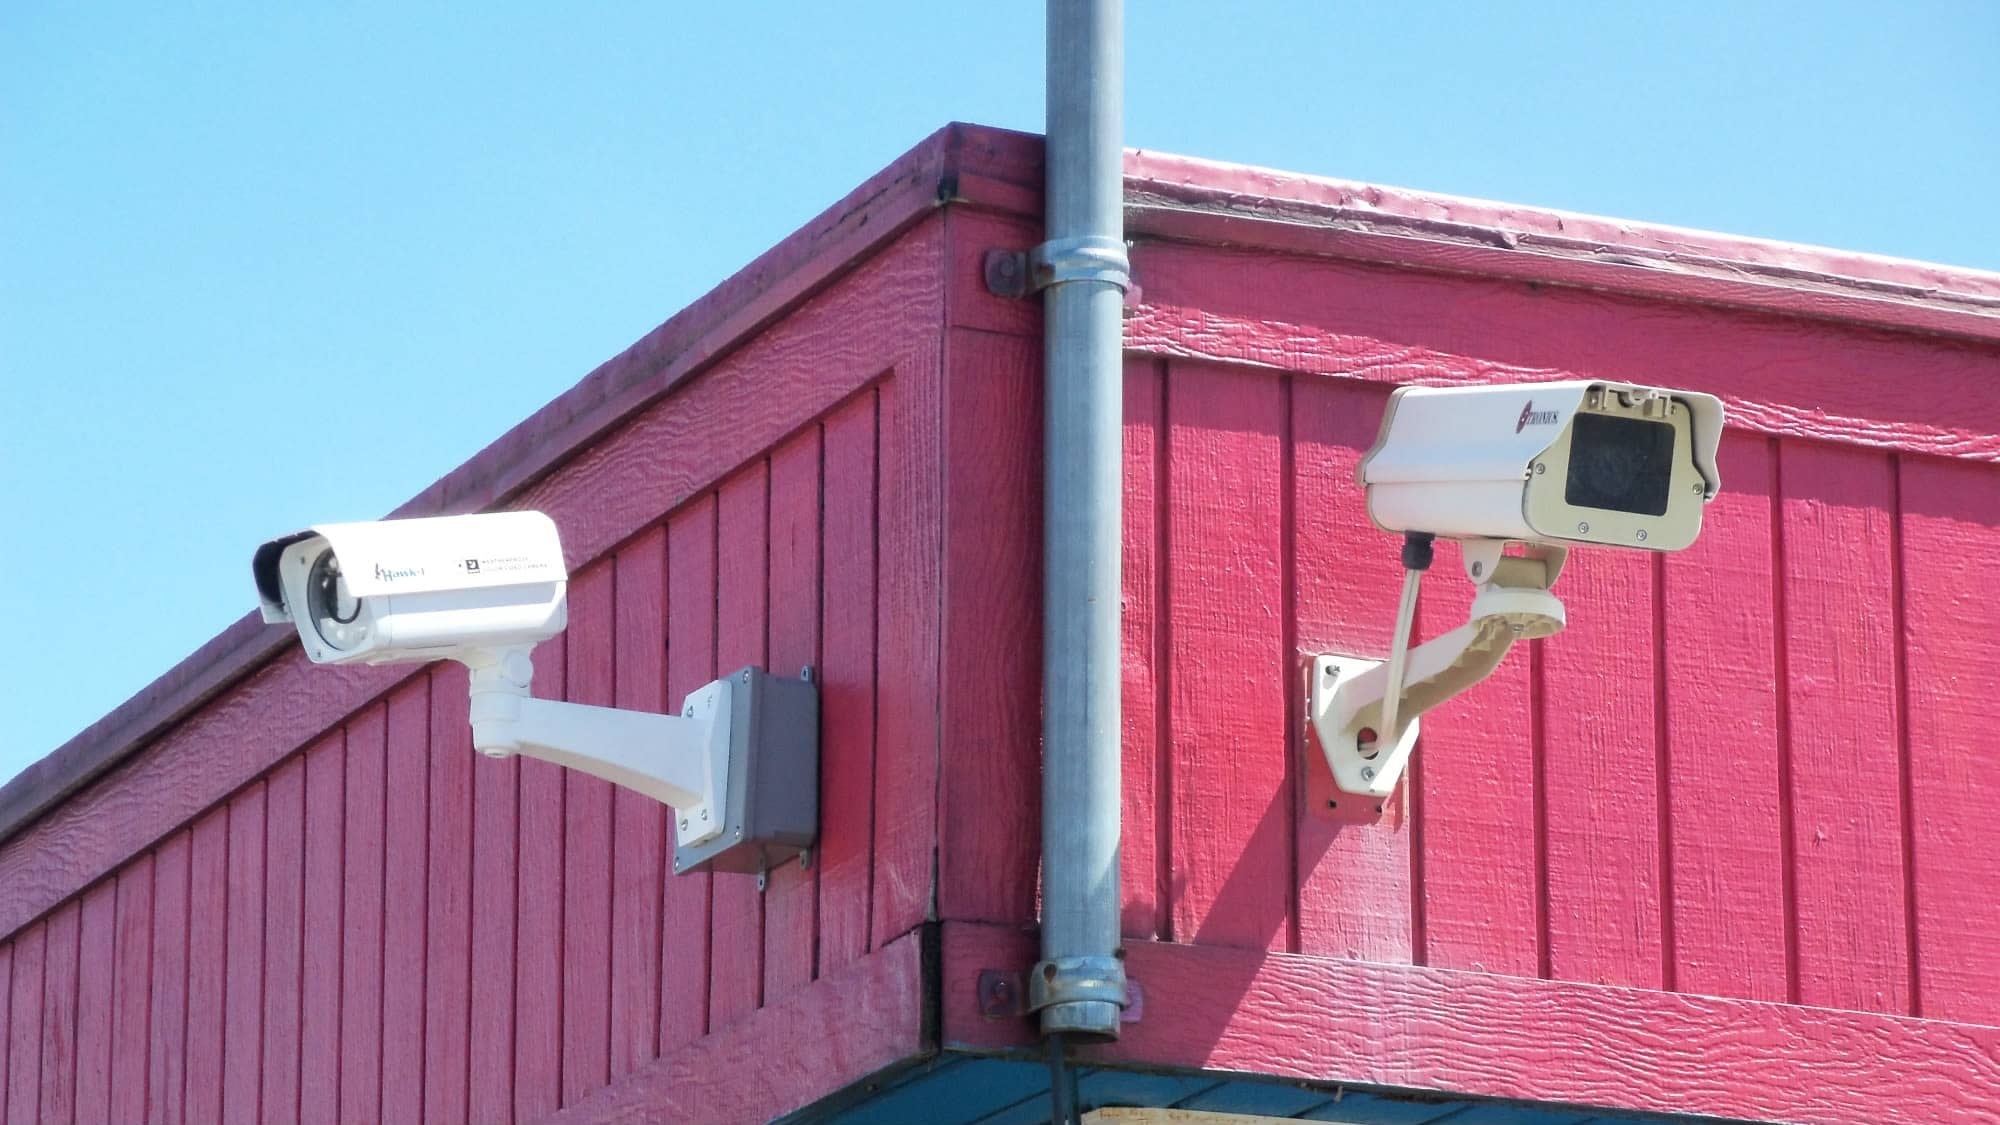 Security camera at Self Storage Plus in Alexandria, Virginia